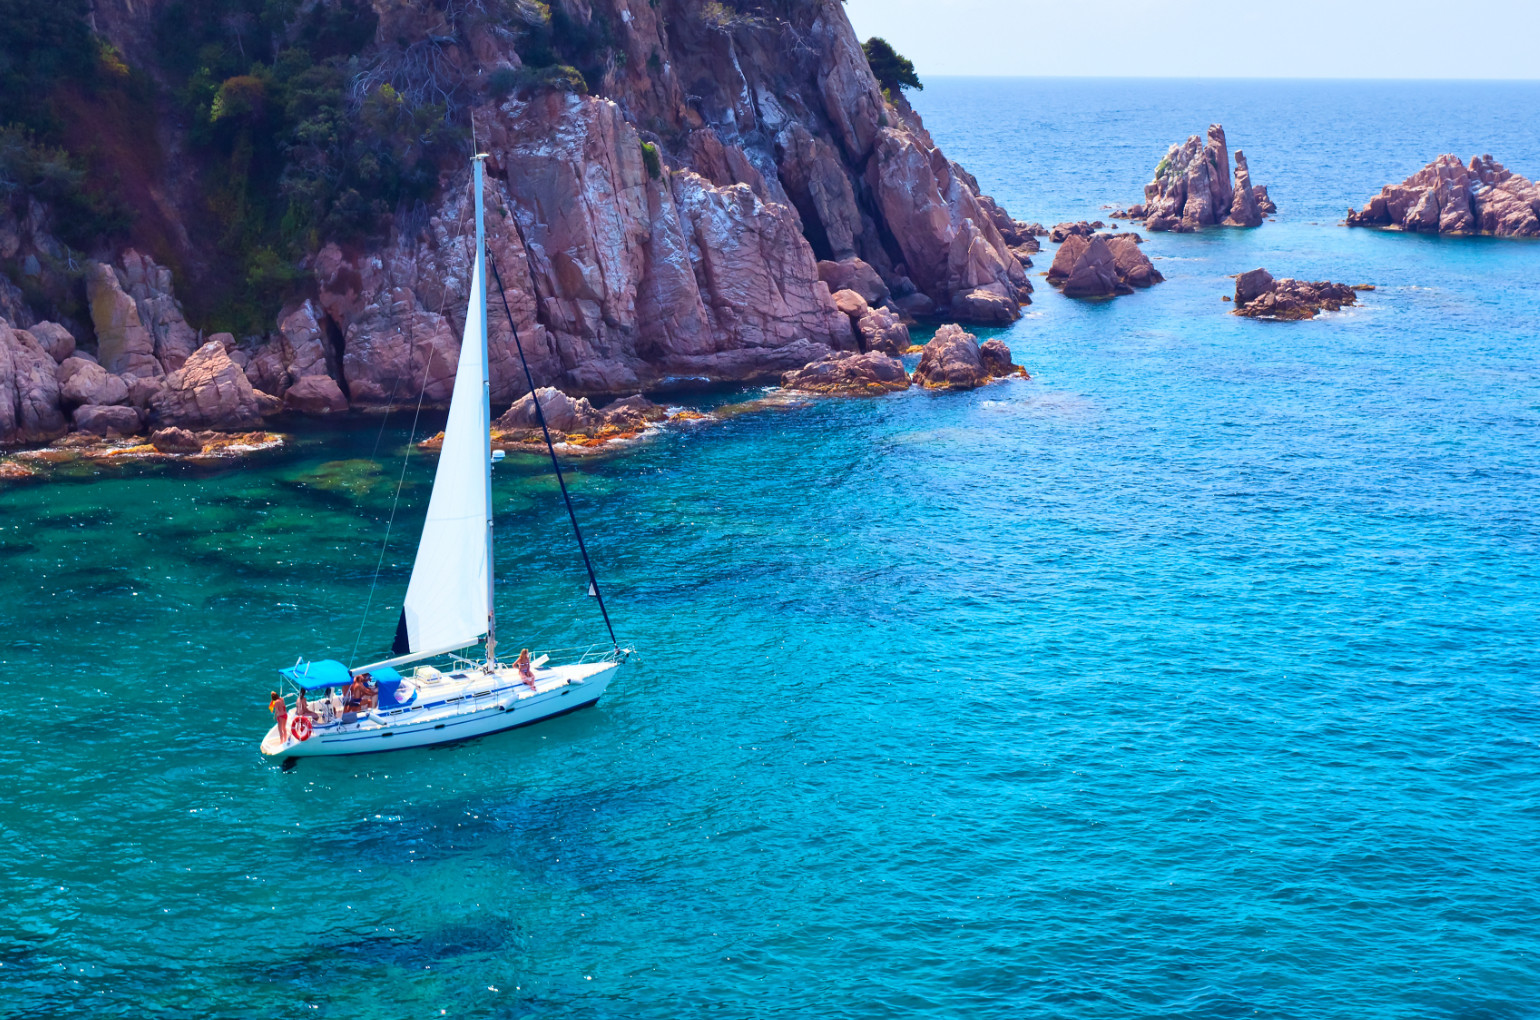 Yacht in sea by coastline